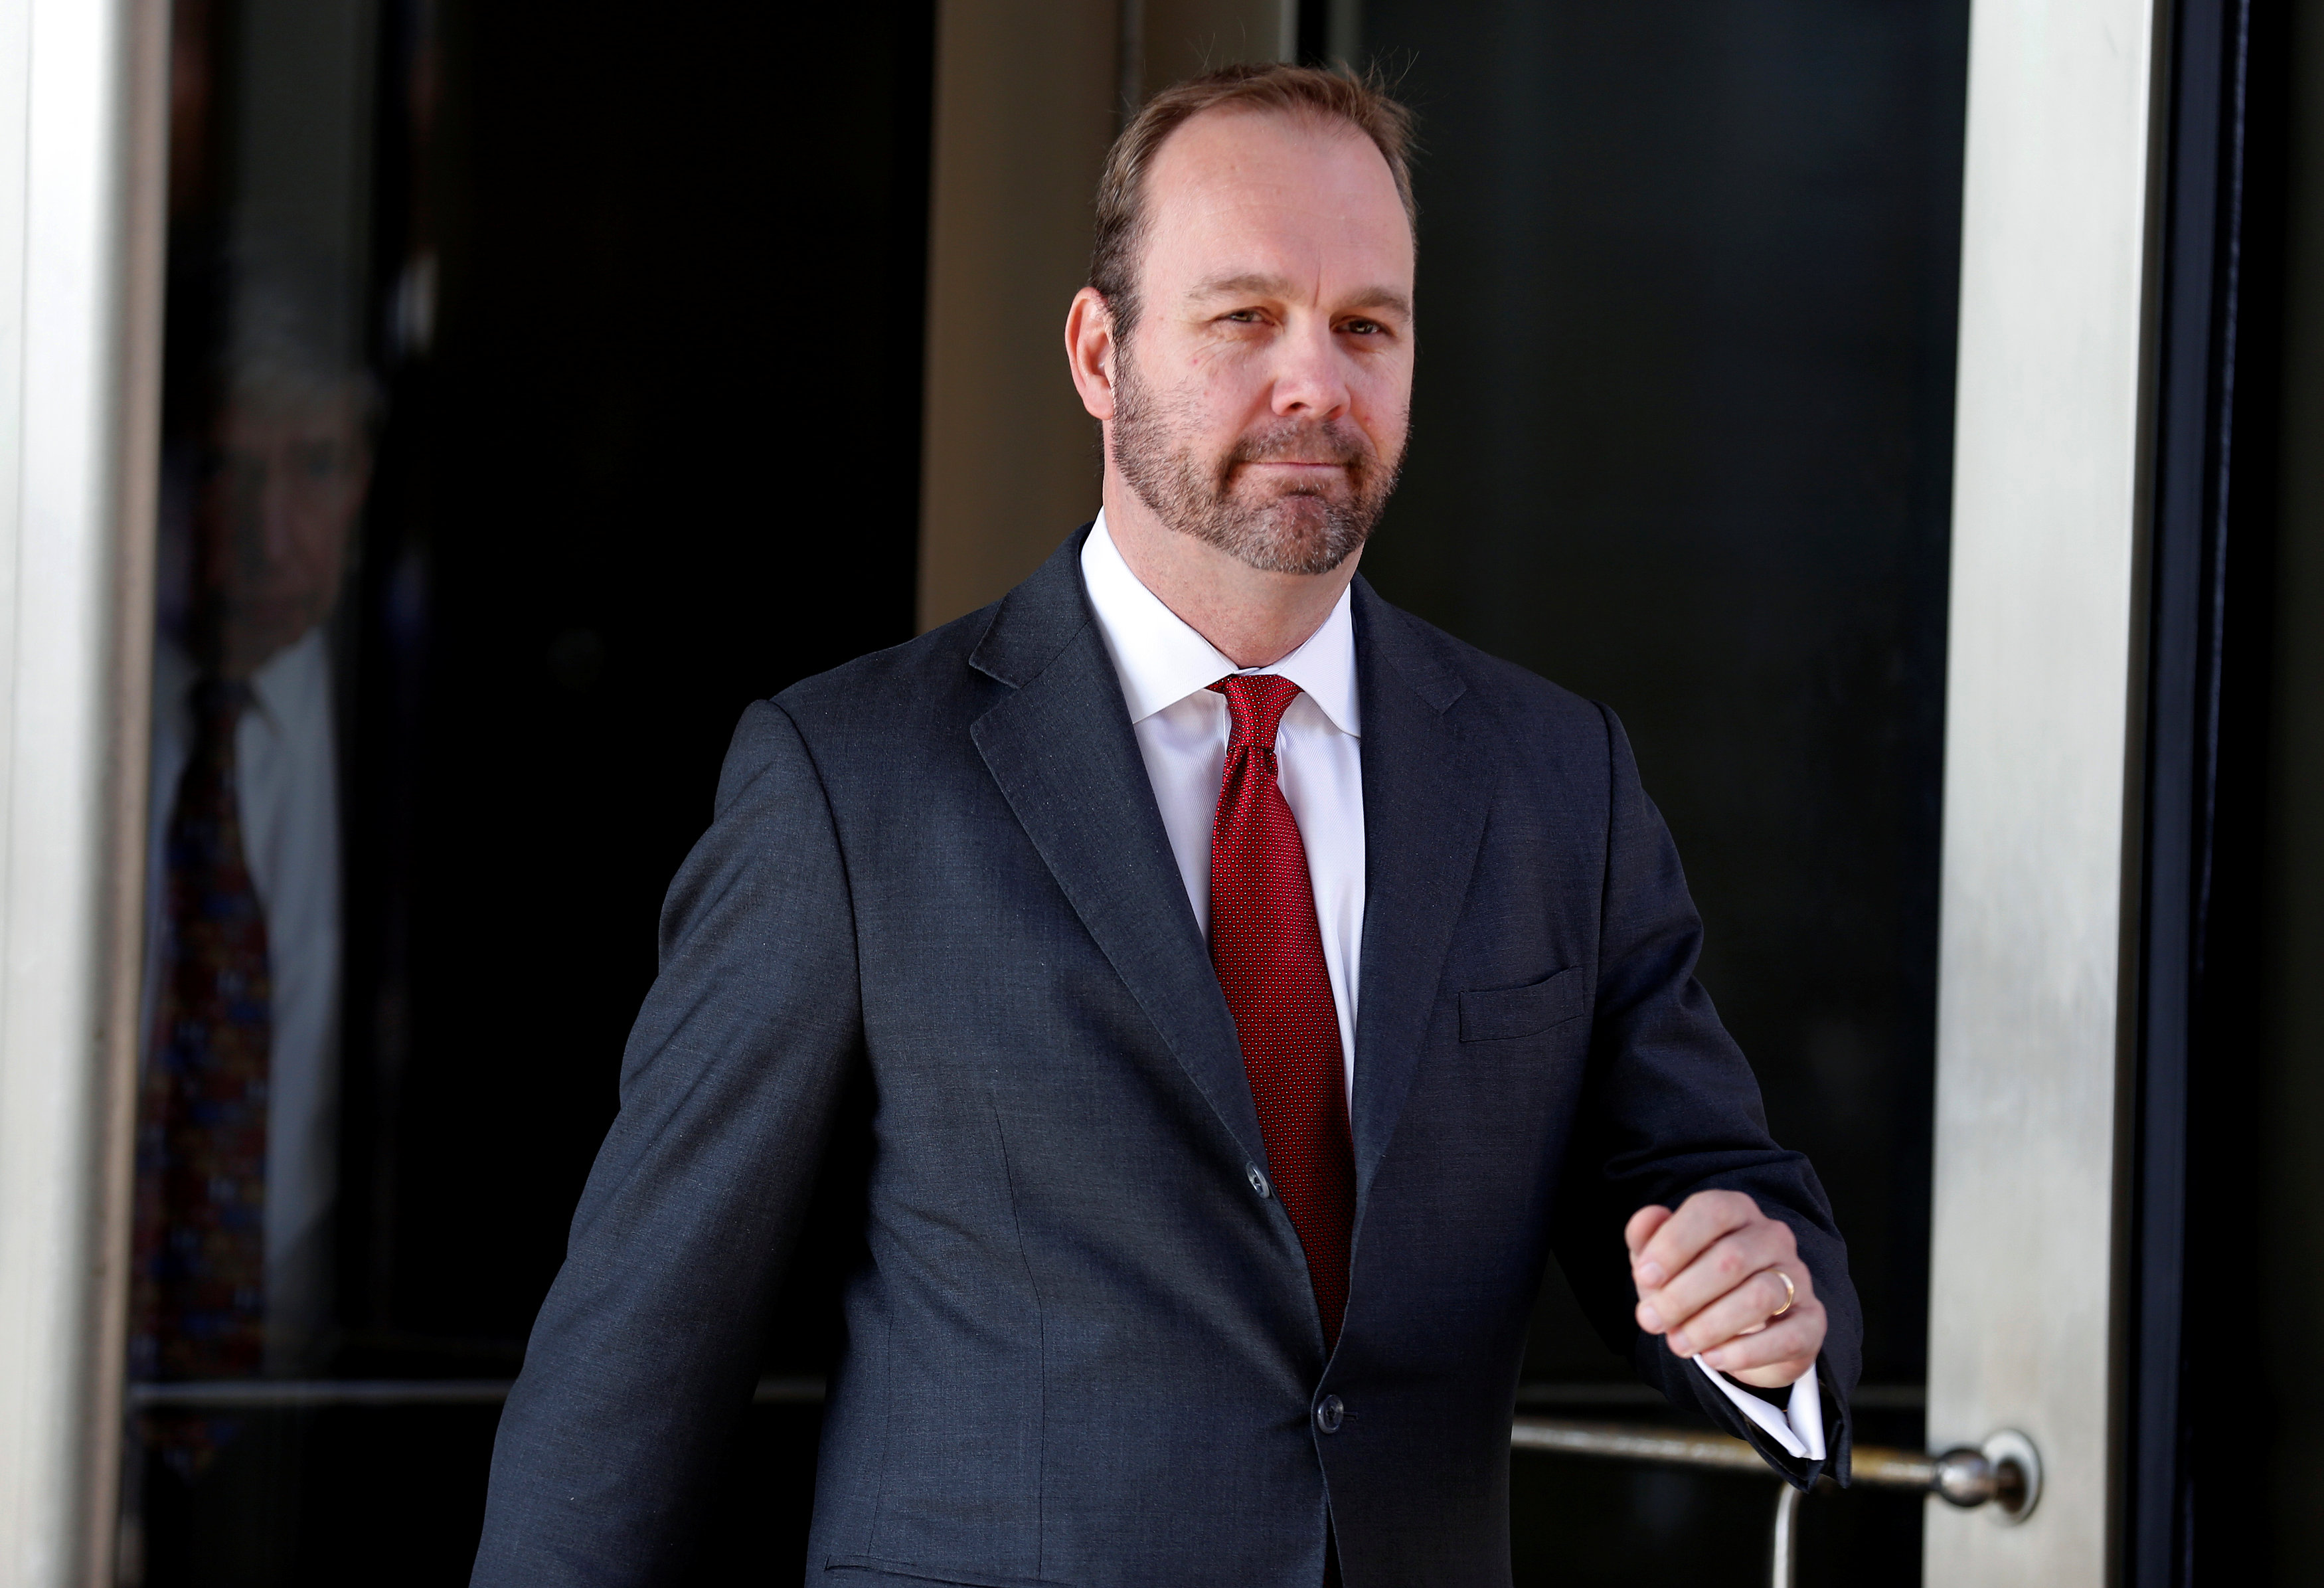 Former Trump campaign aide Rick Gates departs U.S. District Court in Washington